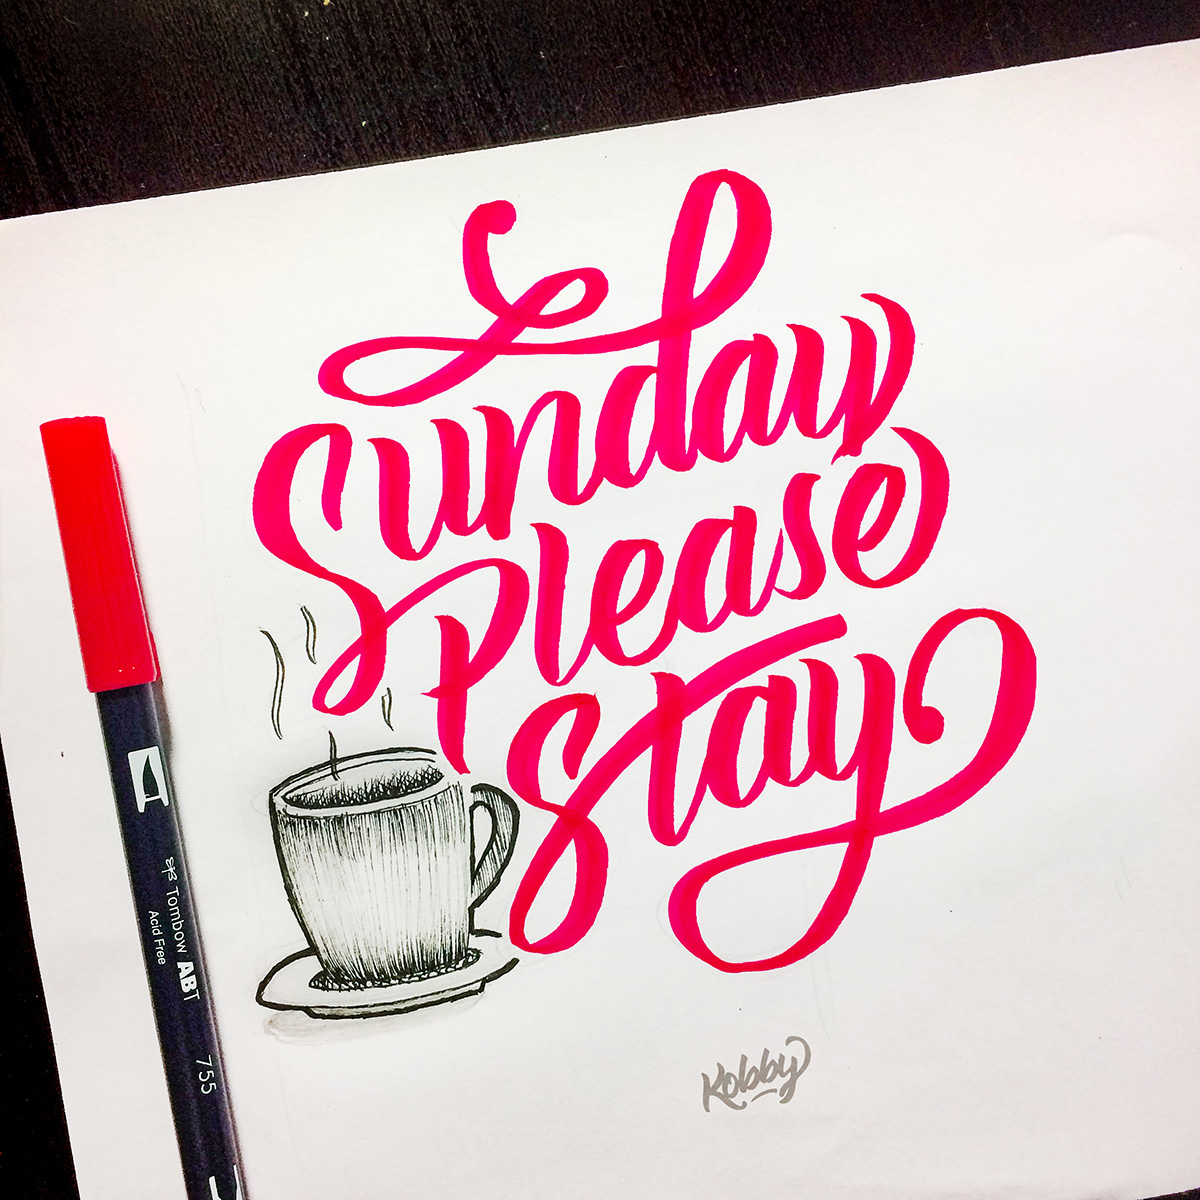 Sunday please stay lettering